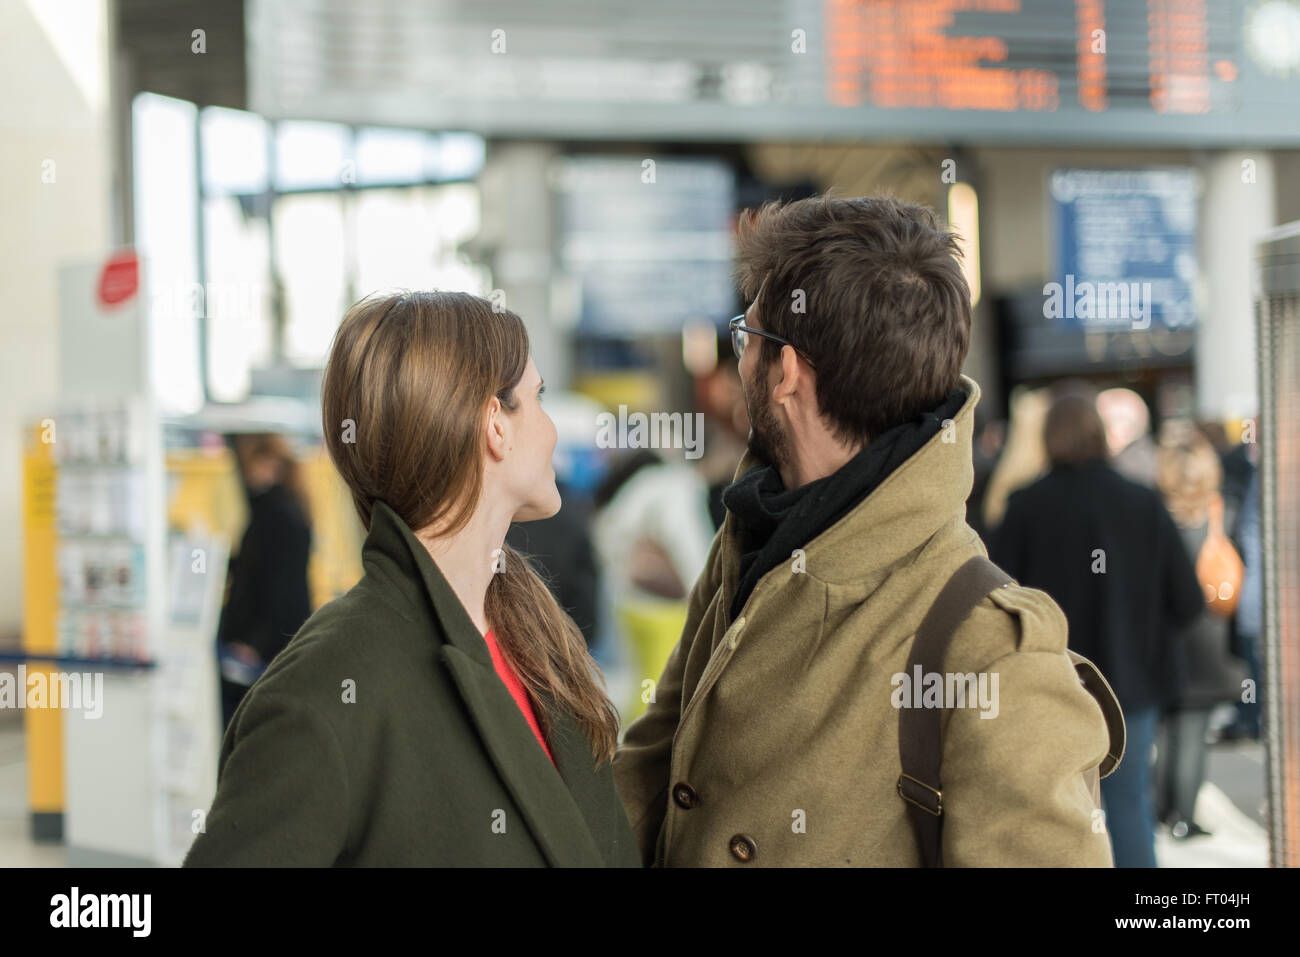 young couple looking at departure announcements in a train station - Stock Image